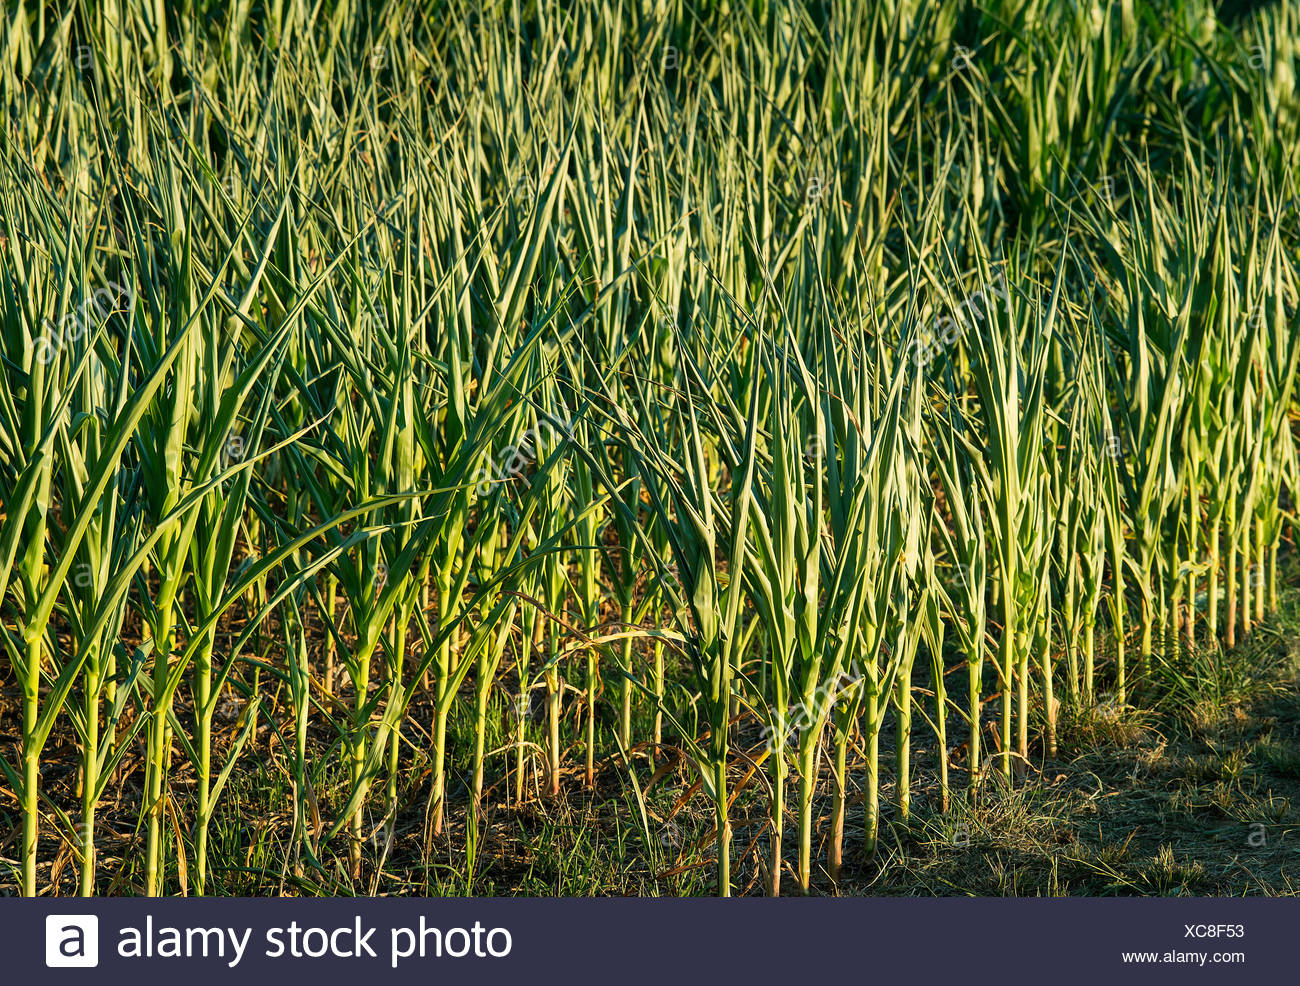 Young corn crop. - Stock Image